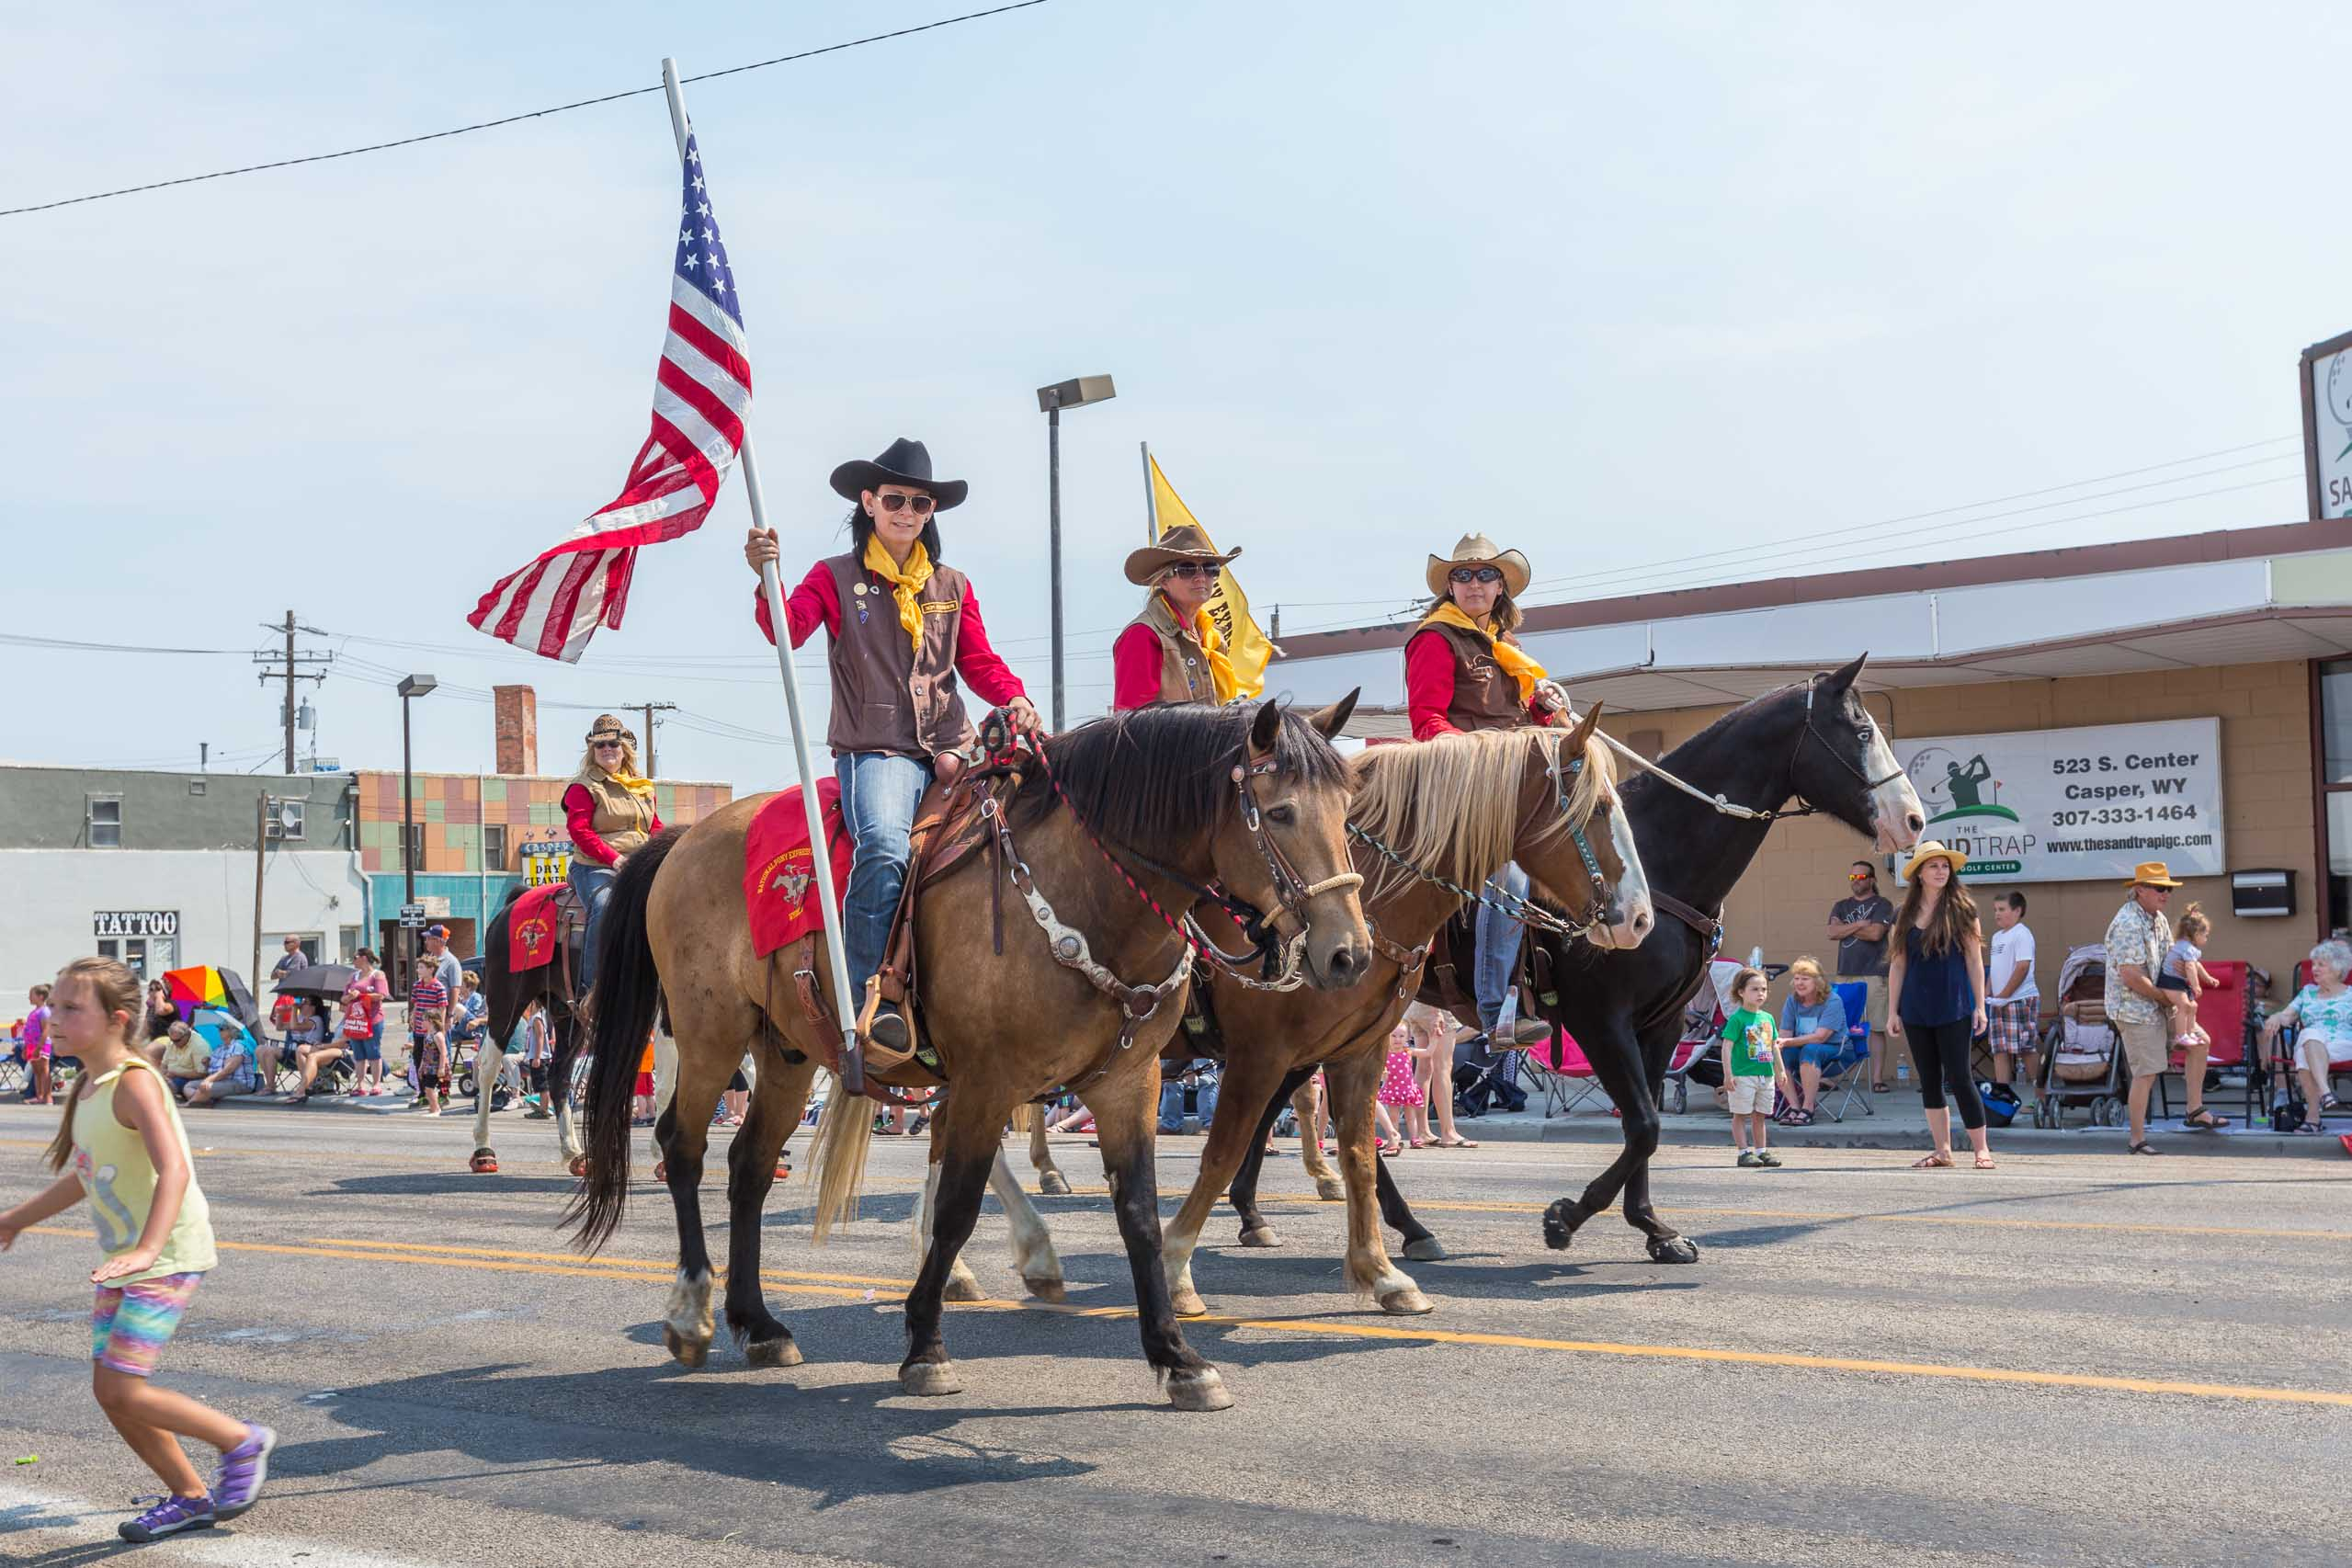 Parade Day 2017 Downtown Development Authority Of Casper